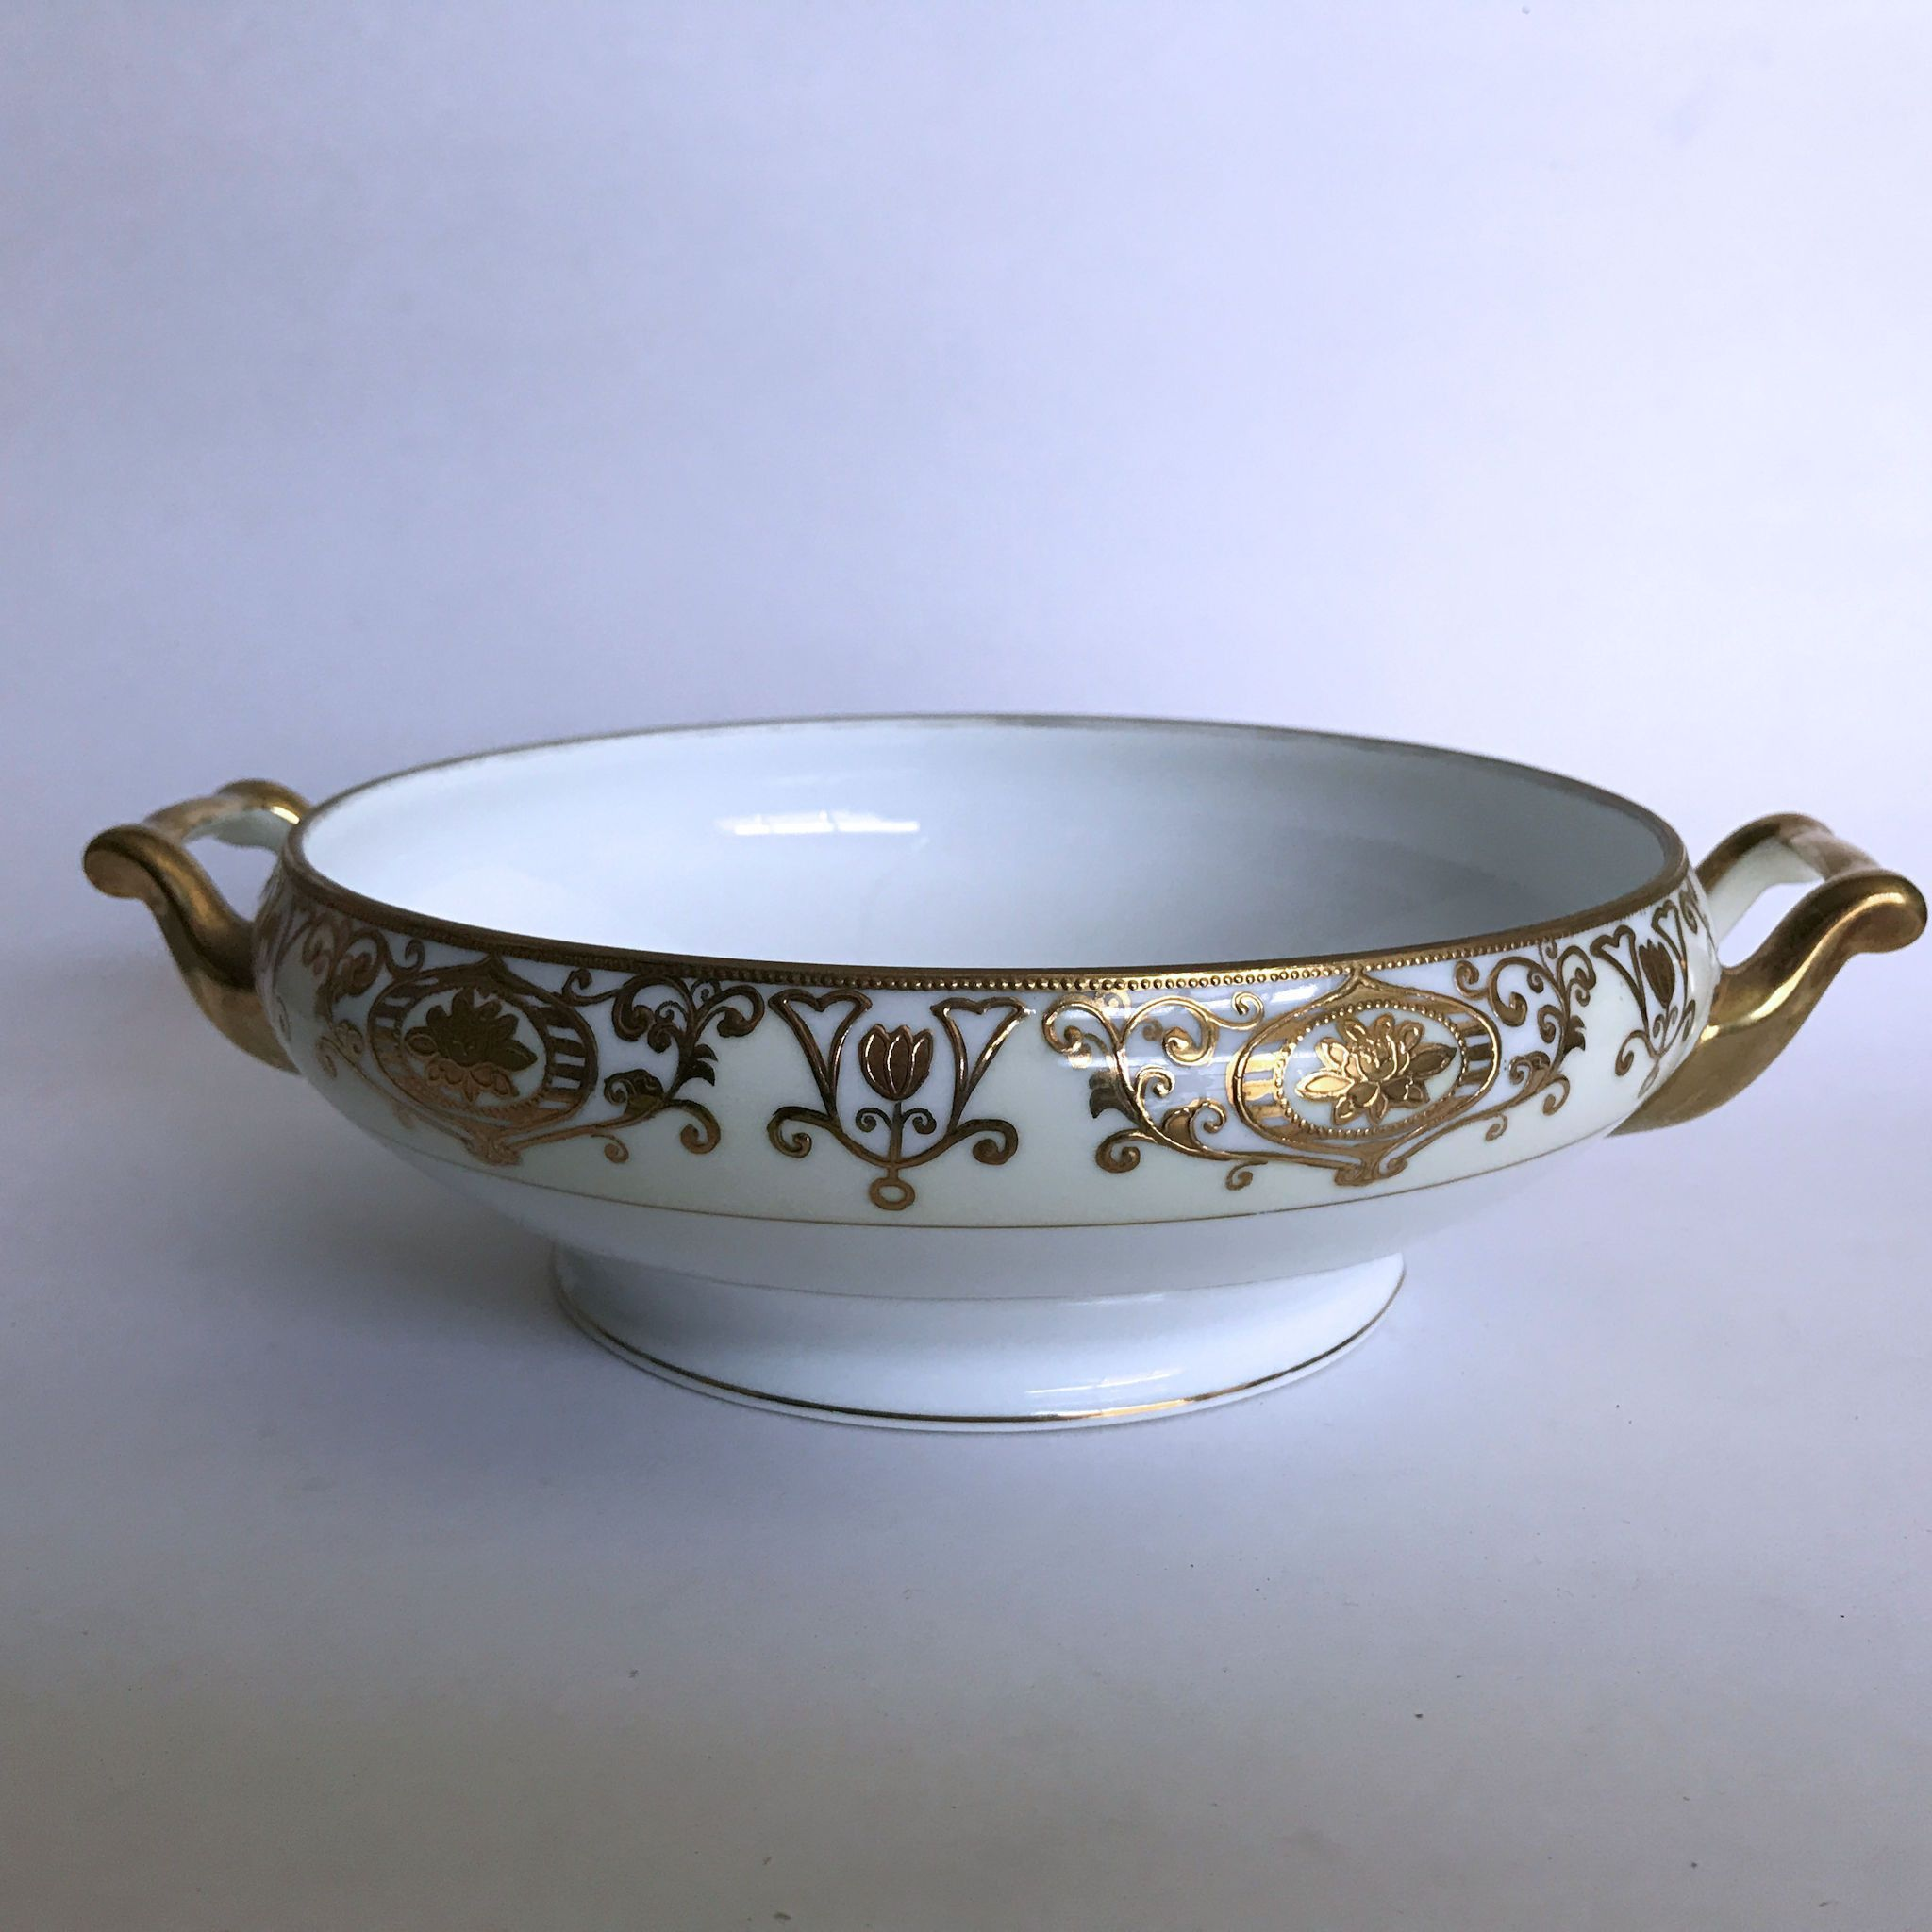 Vintage Noritake Christmas Ball 175 Serving Bowl Cream with Gold Flowers Scrolls